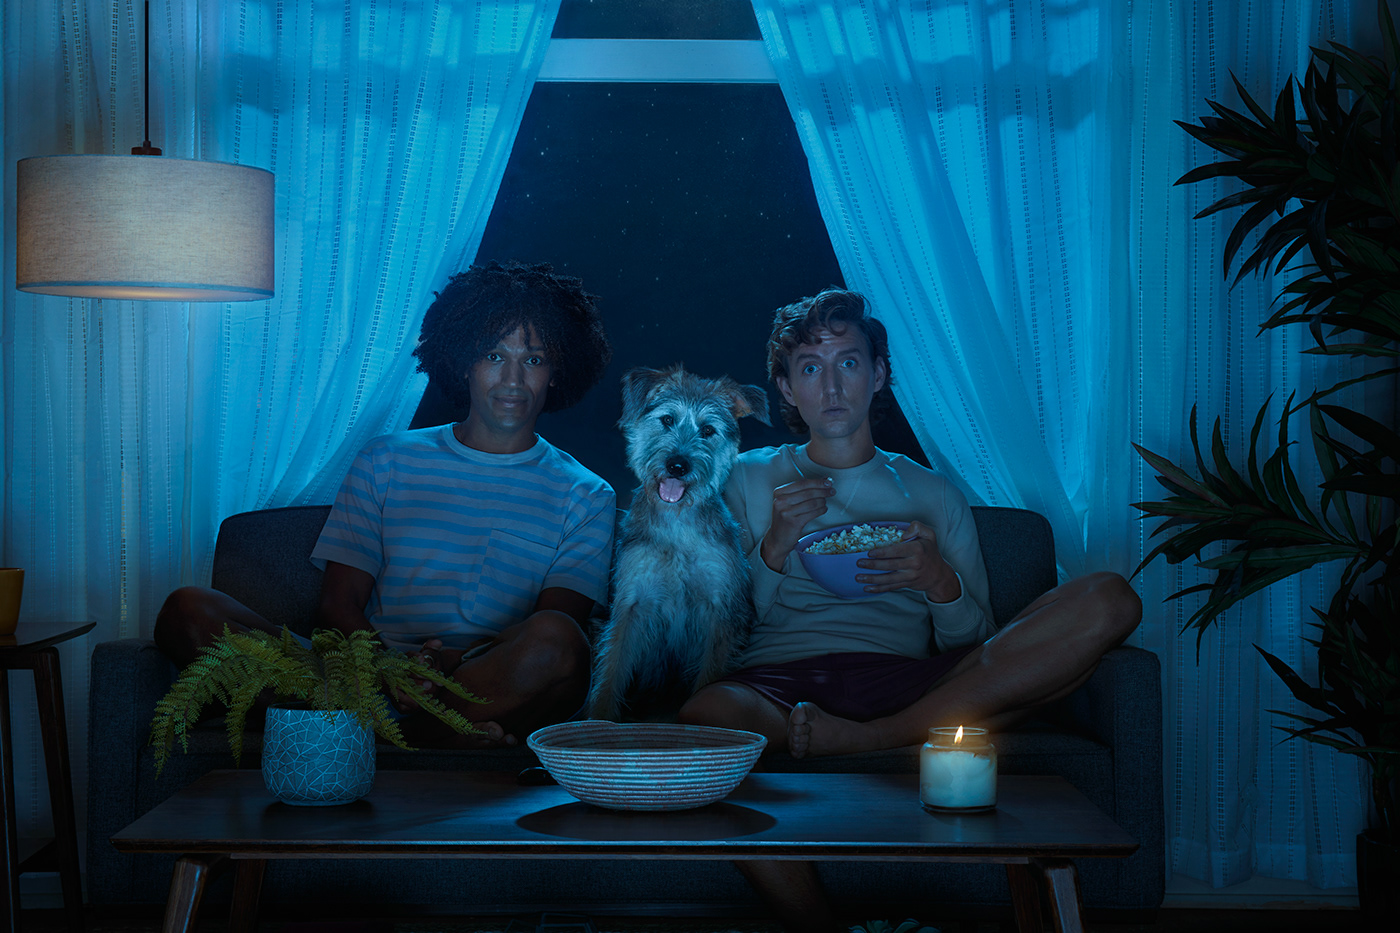 two men and their dog watch TV in the dark.